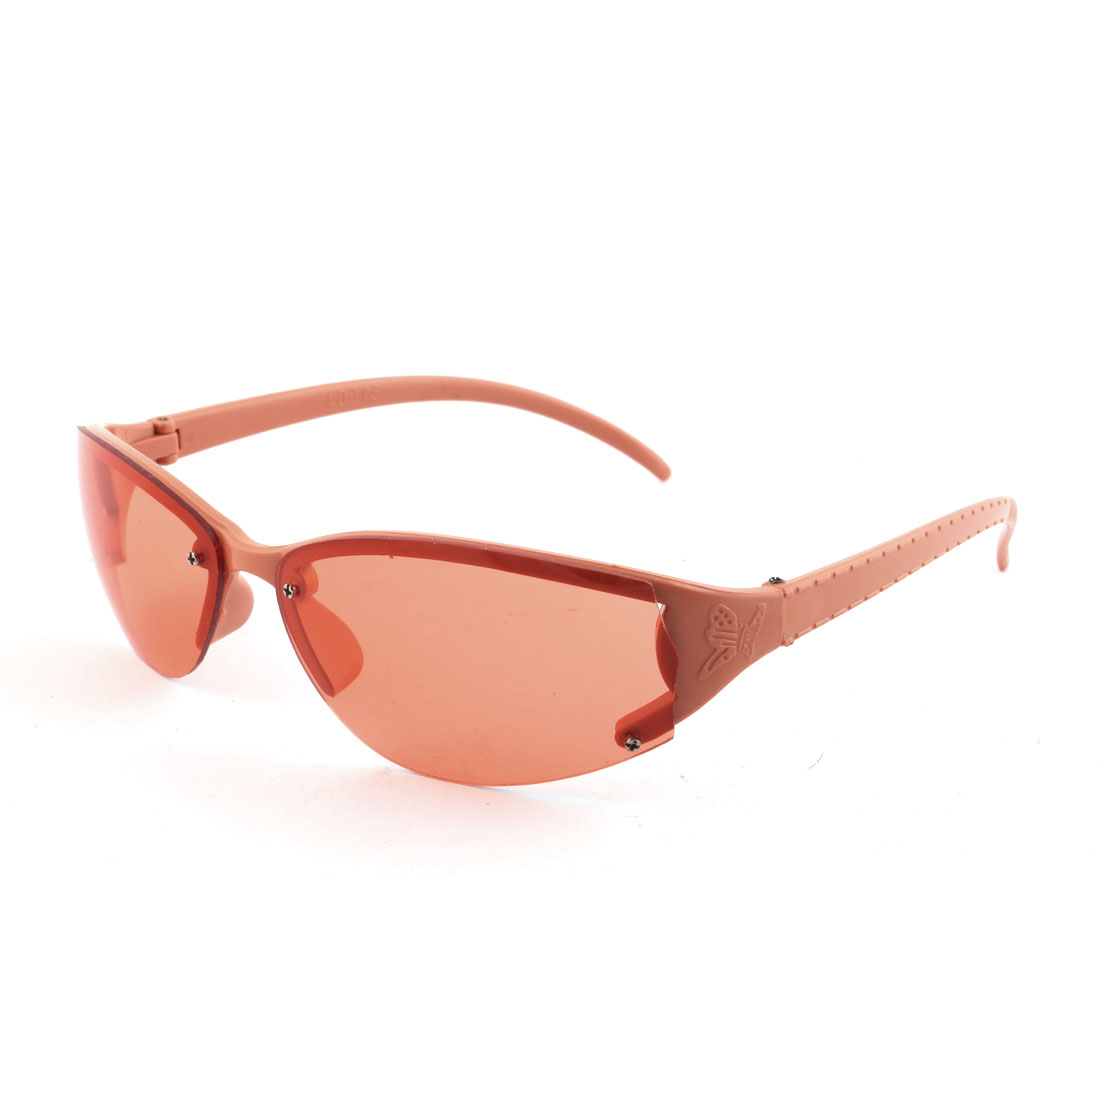 Outdoor Plastic Half Rimless Eyes Protector Eyewear Sunglasses Orange for Ladies